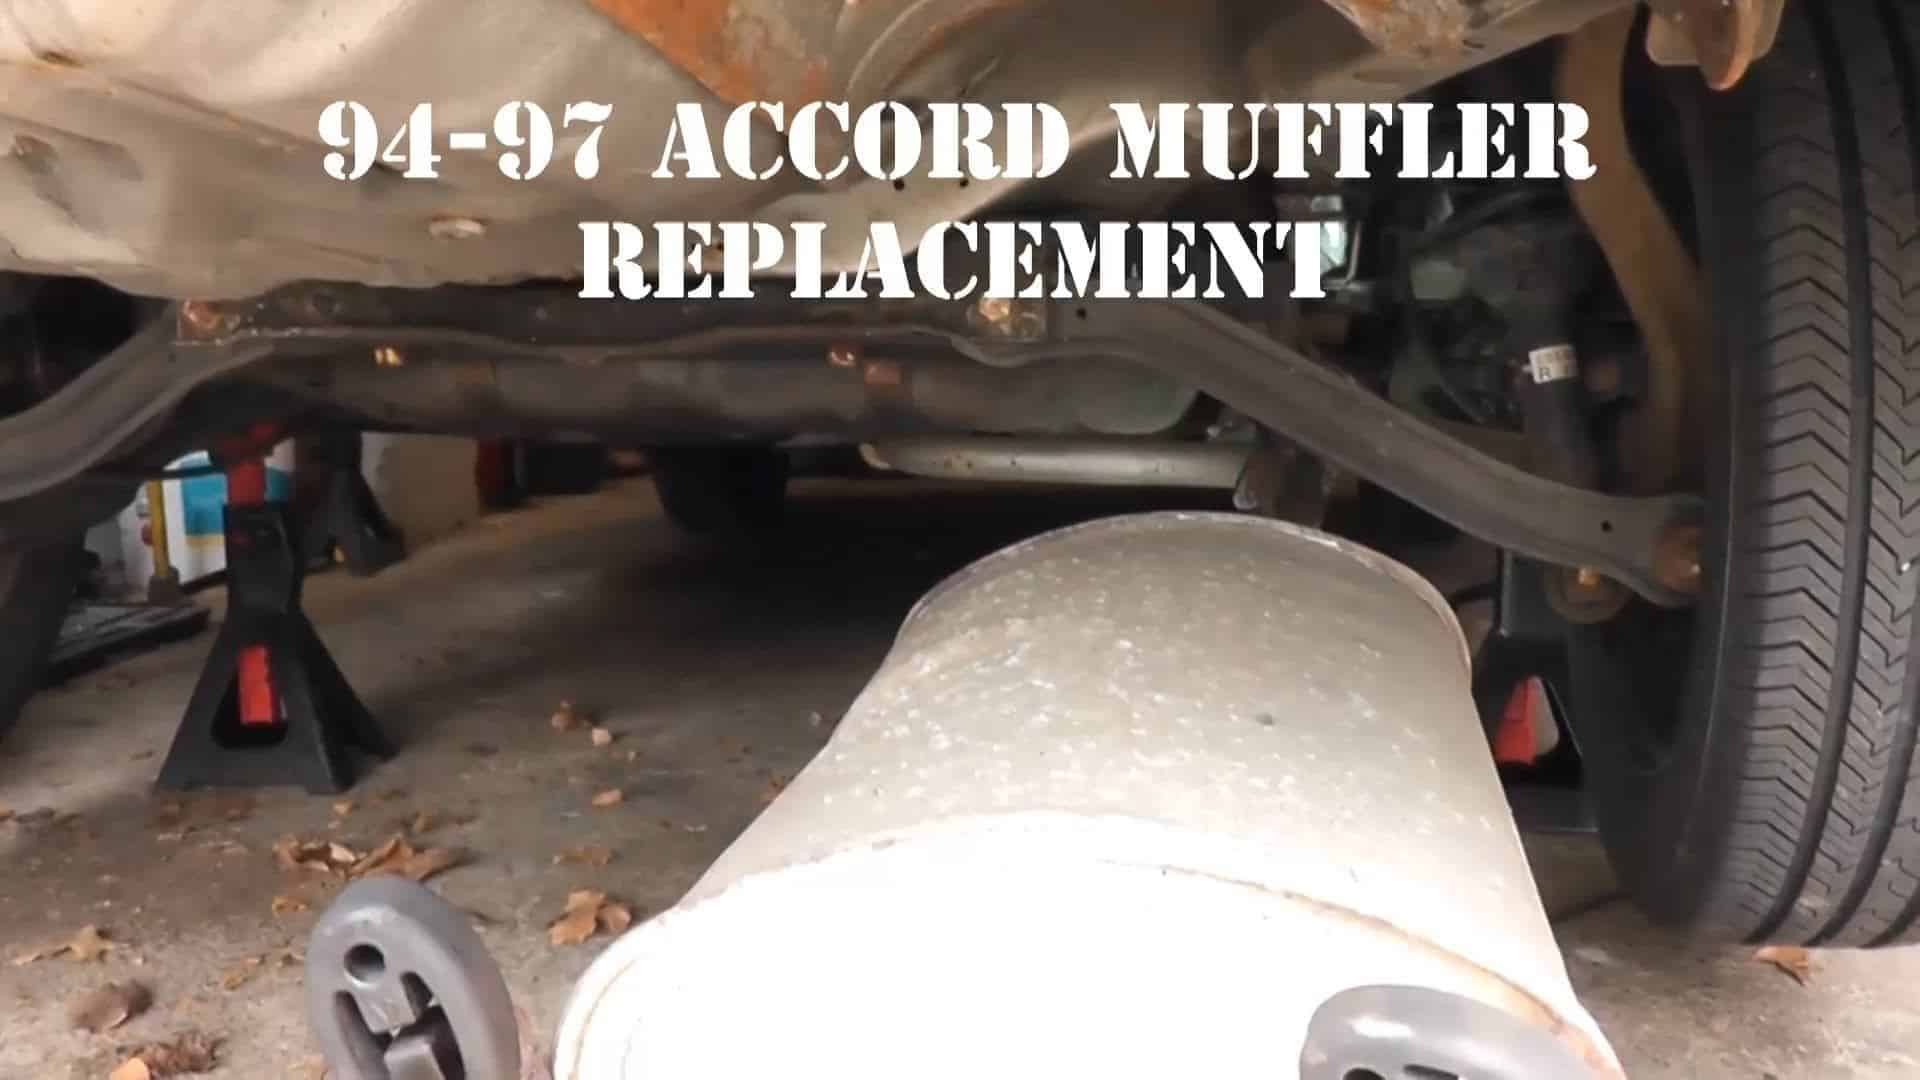 Muffler Replacement